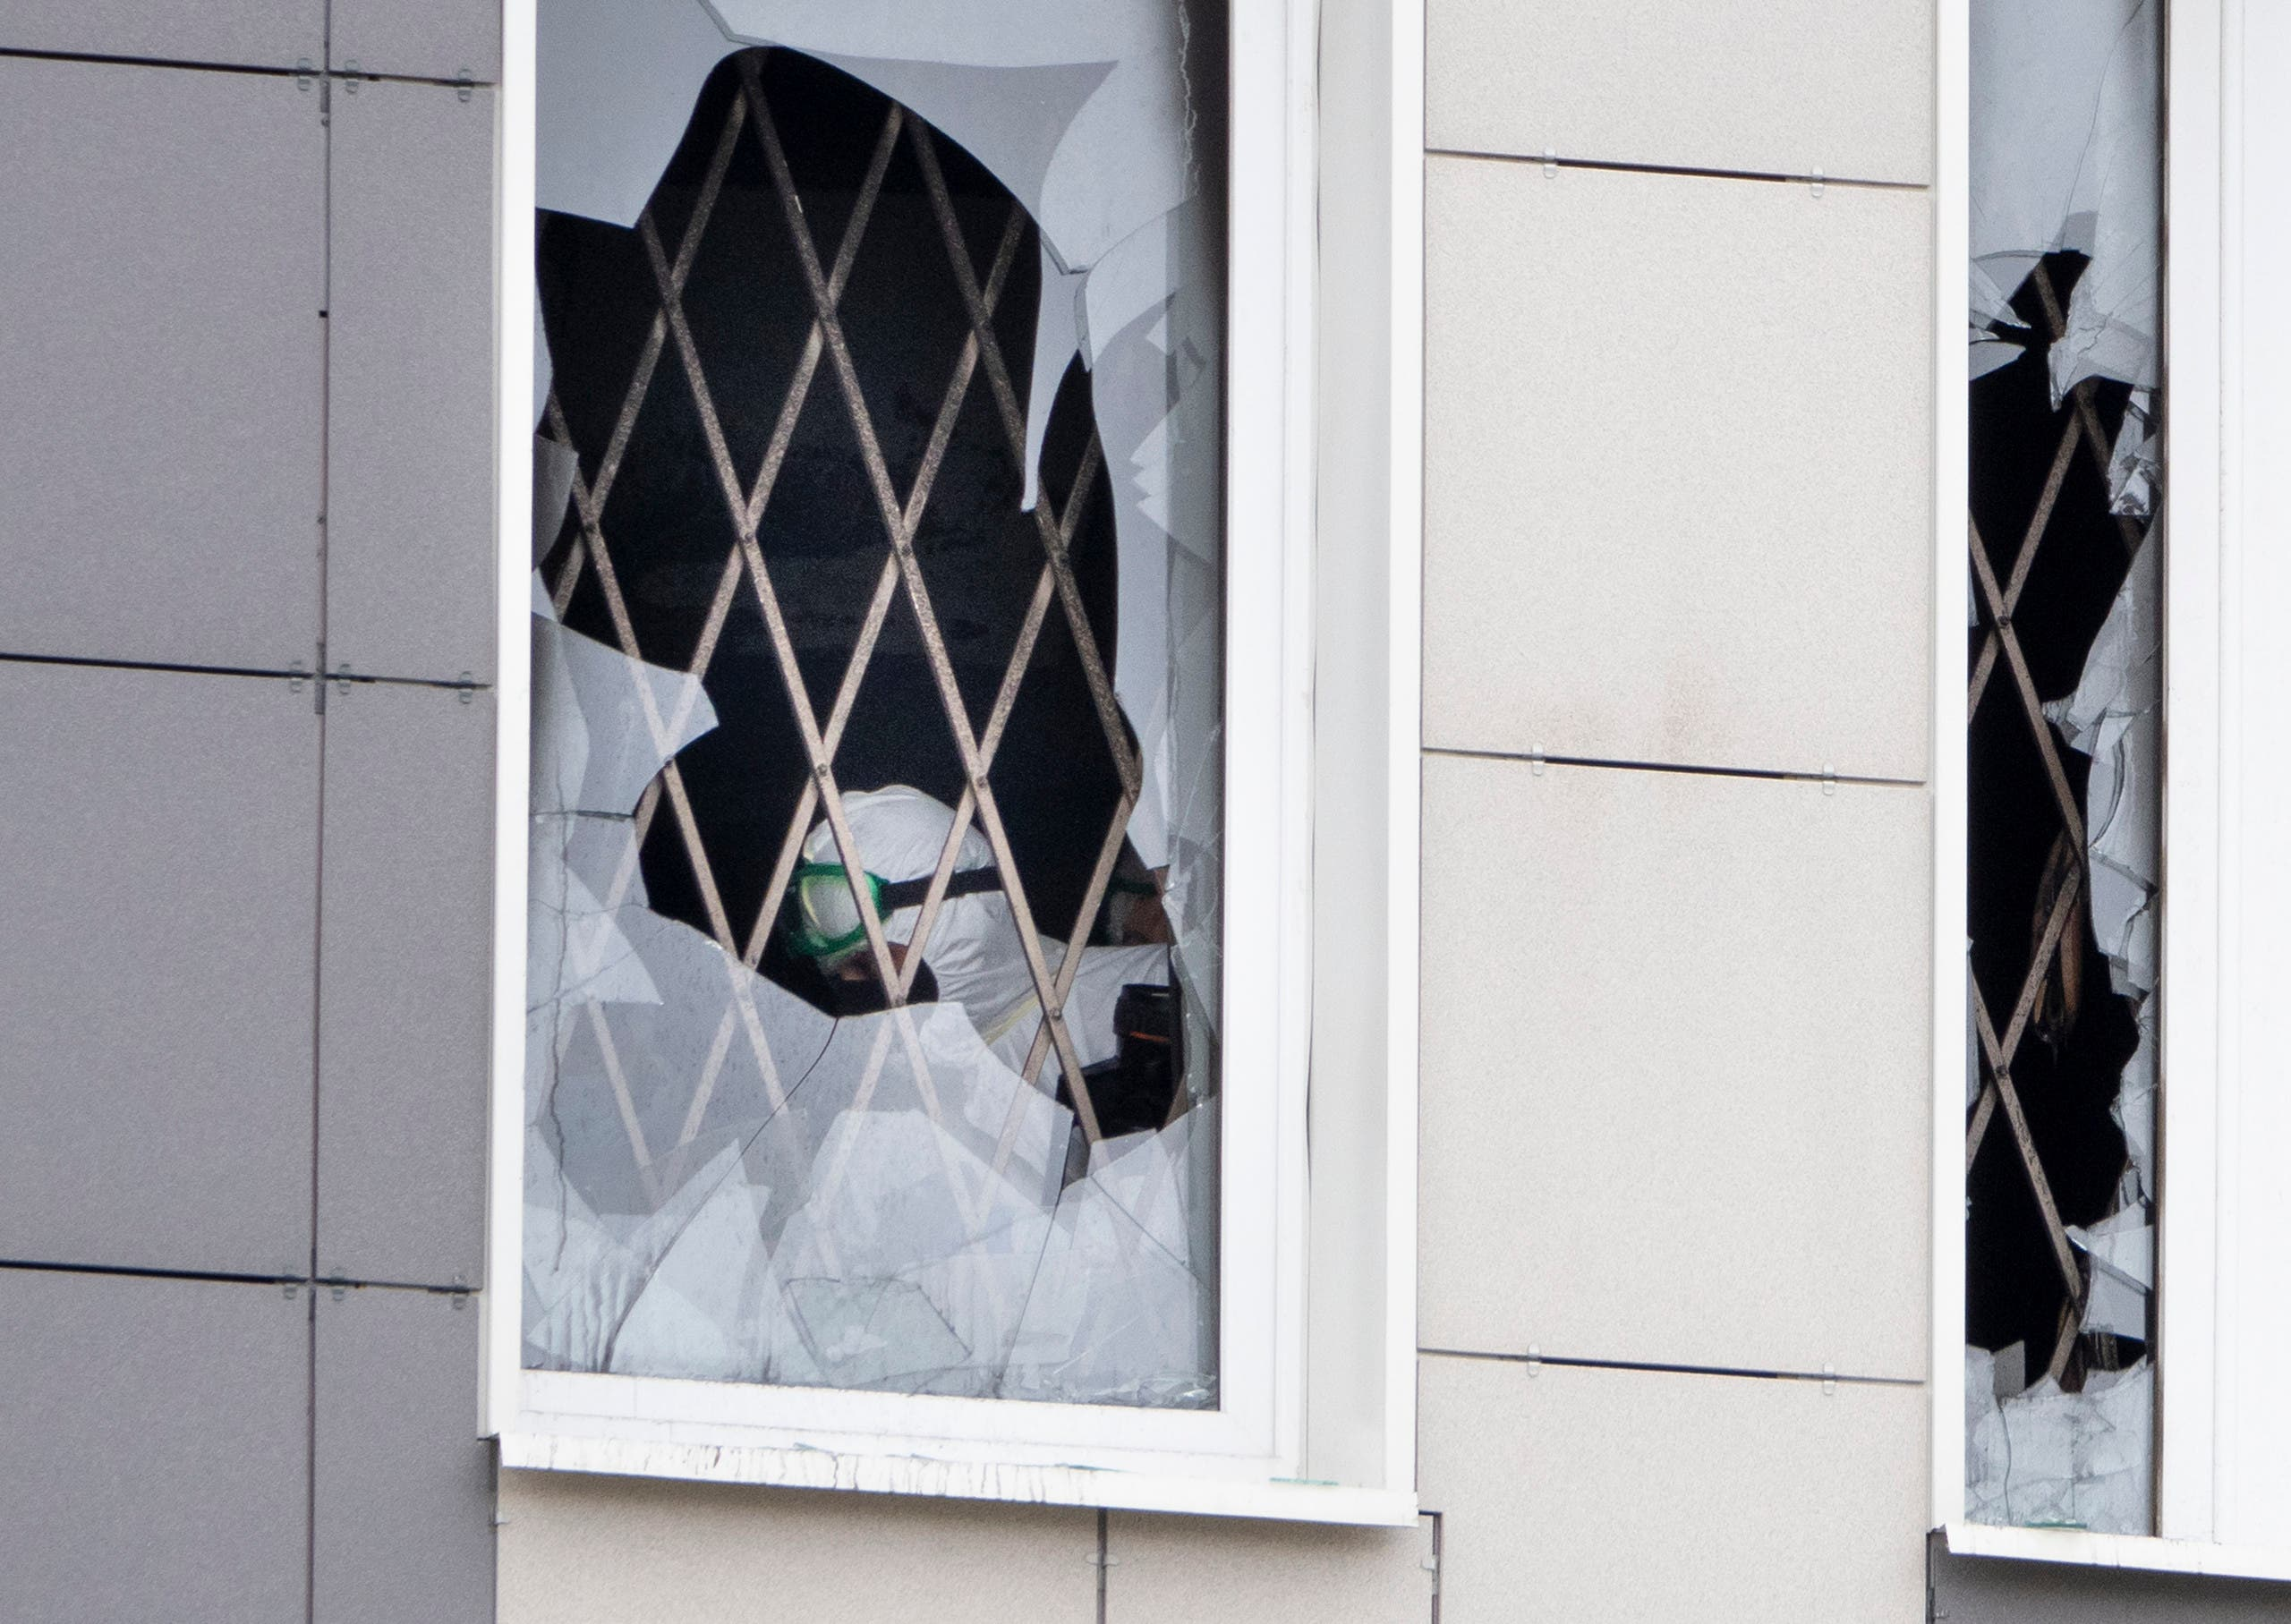 An investigator is seen through a broken window at the scene of a fire at St. George Hospital in St. Petersburg, Russia. (AP)